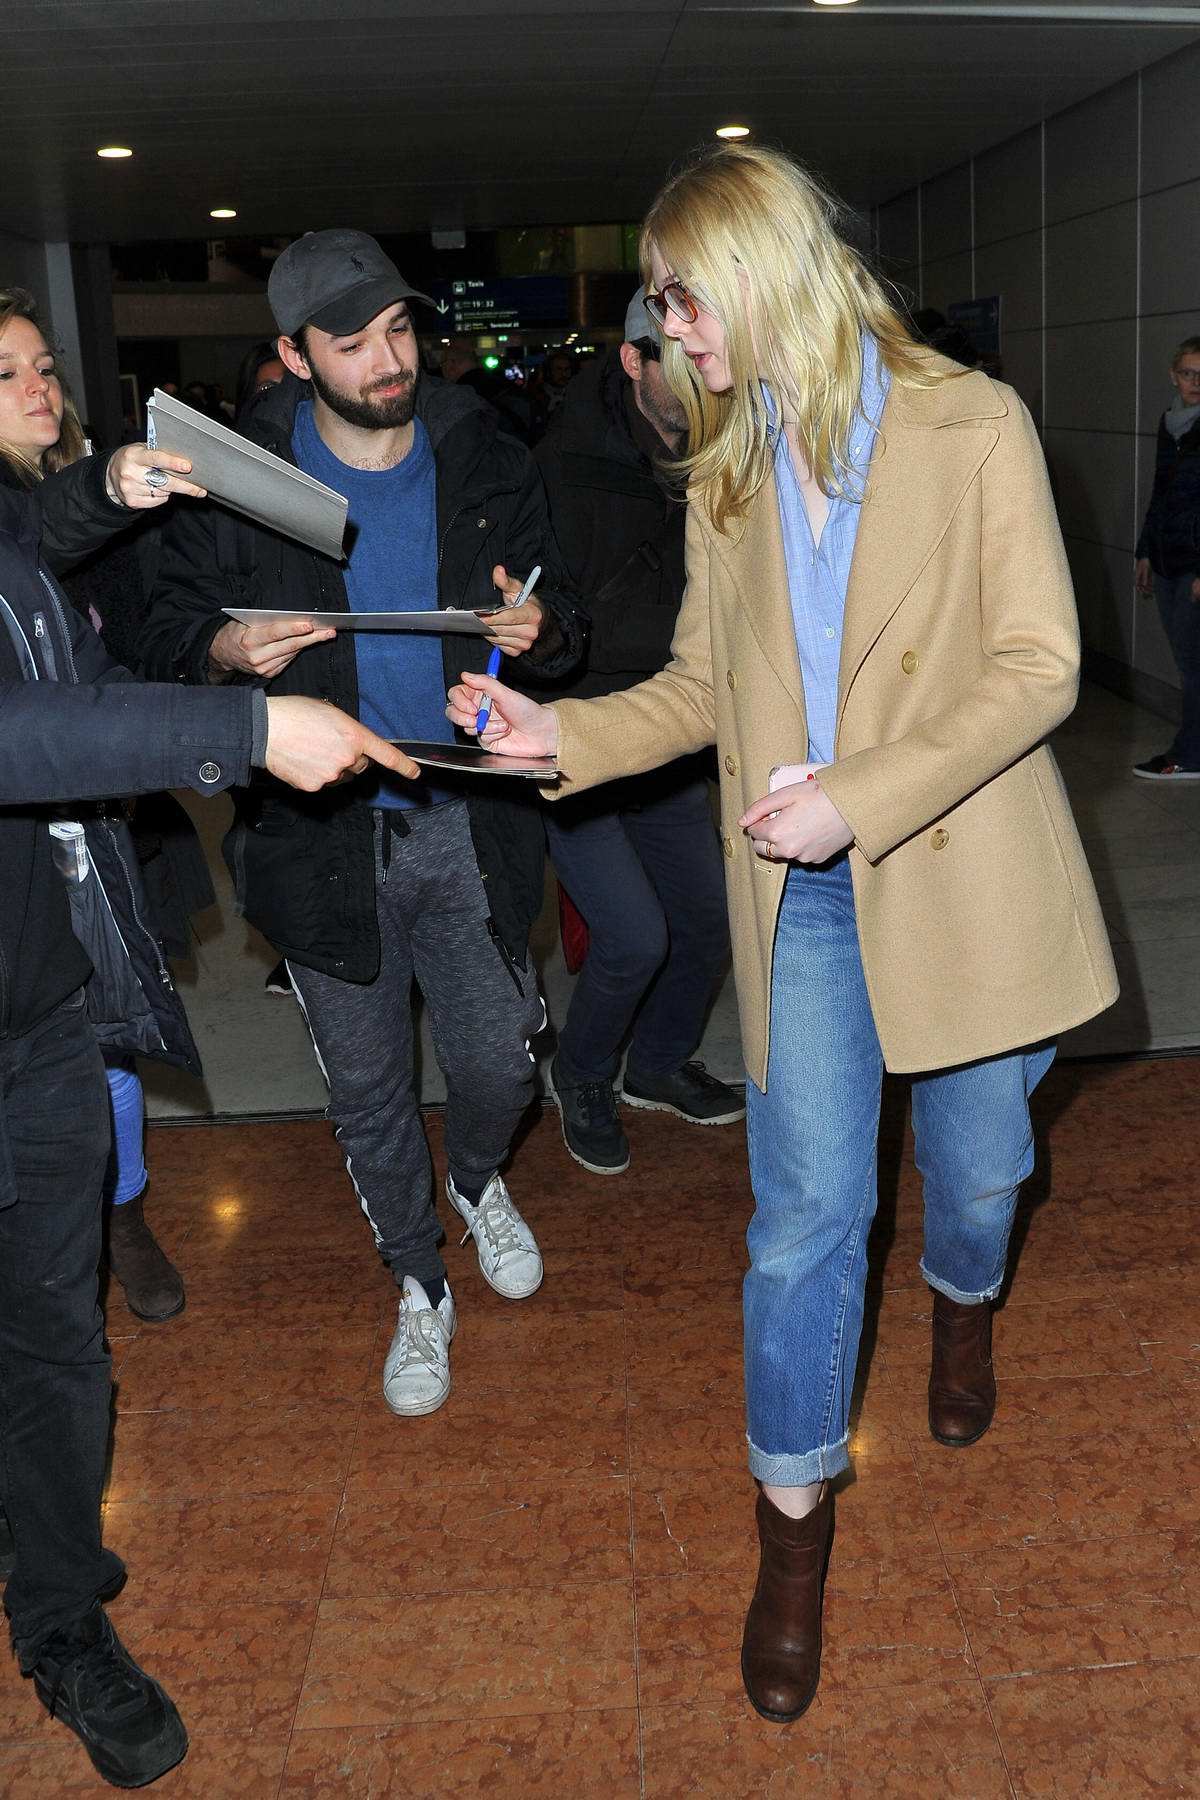 8c1f5332451a6b elle fanning sports gucci glasses paired with a tan blazer, blue shirt,  jeans and brown boots as she arrives at the cdg airport in paris,  france-030319_8